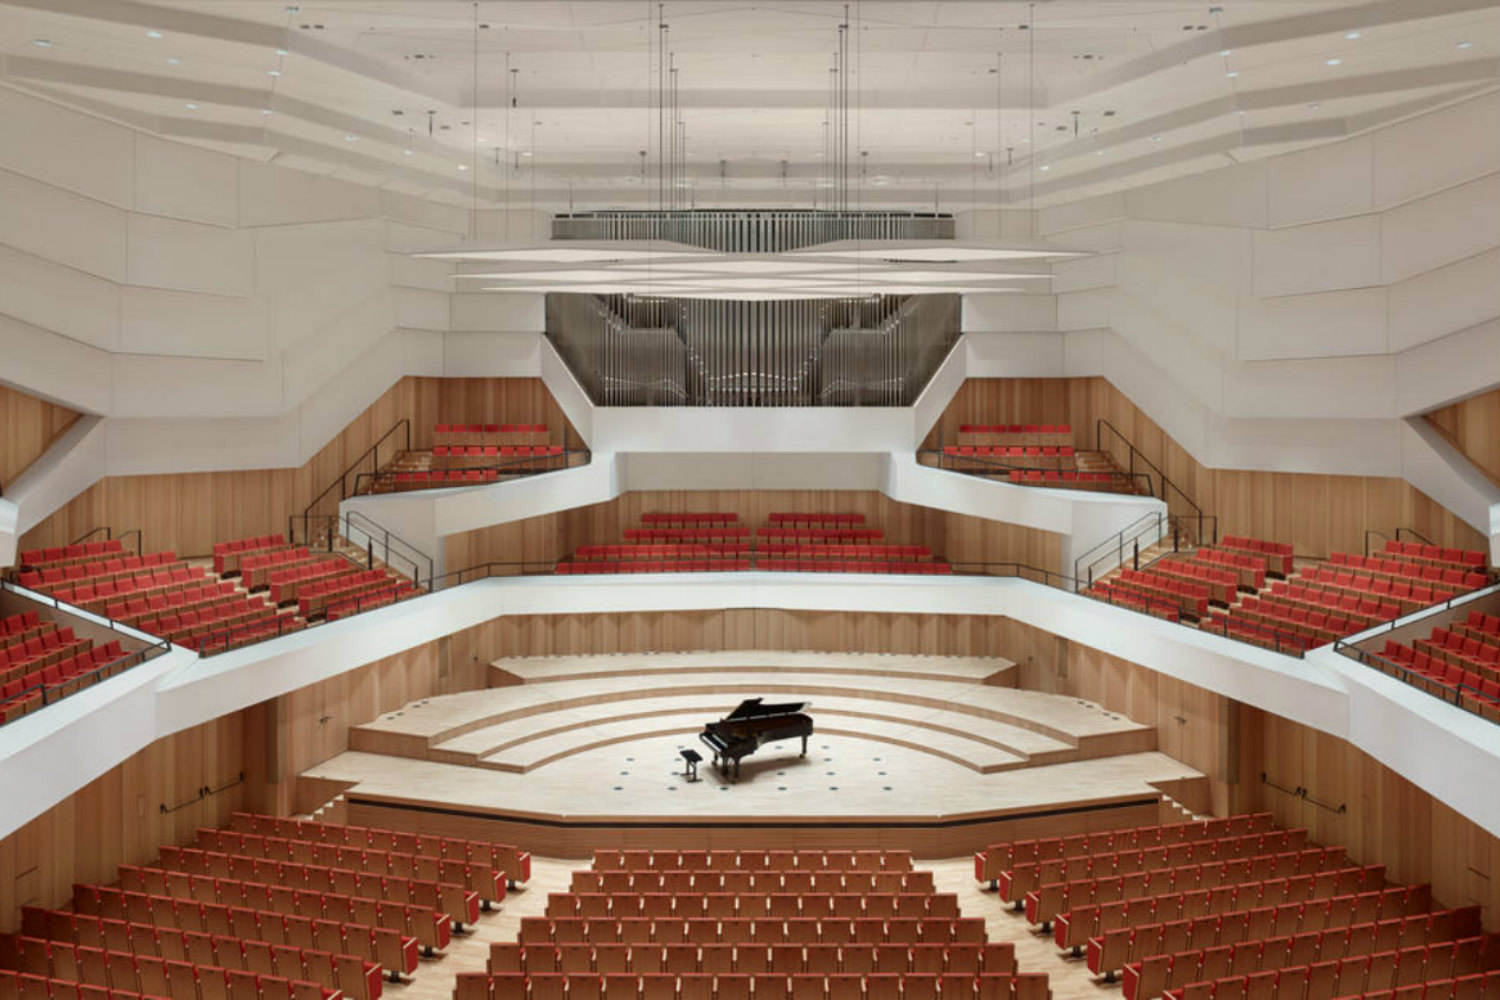 Located in the middle of Dresden's old town, the Kulturpalast highlights with its glass facades and striking roof structure. ADA (WSDG) was the responsible acoustician and consultant for the renovation. Interior View